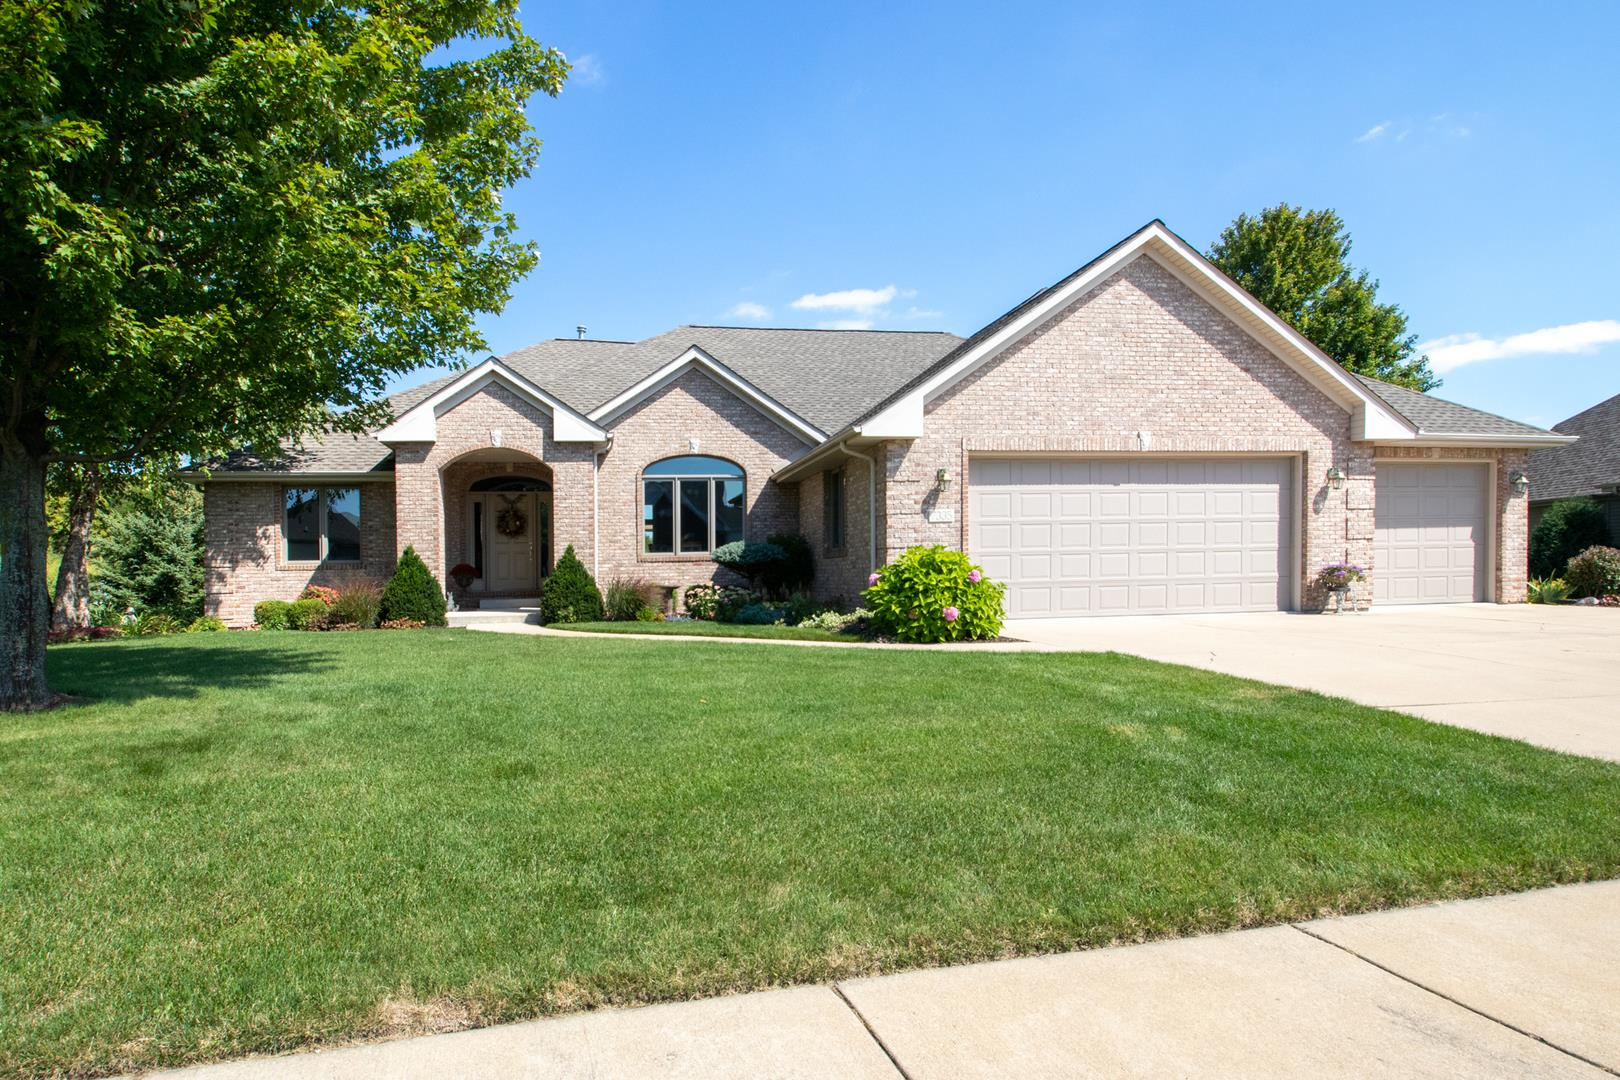 7335 BRIMMER Way, Cherry Valley, IL 61016 - #: 10508085